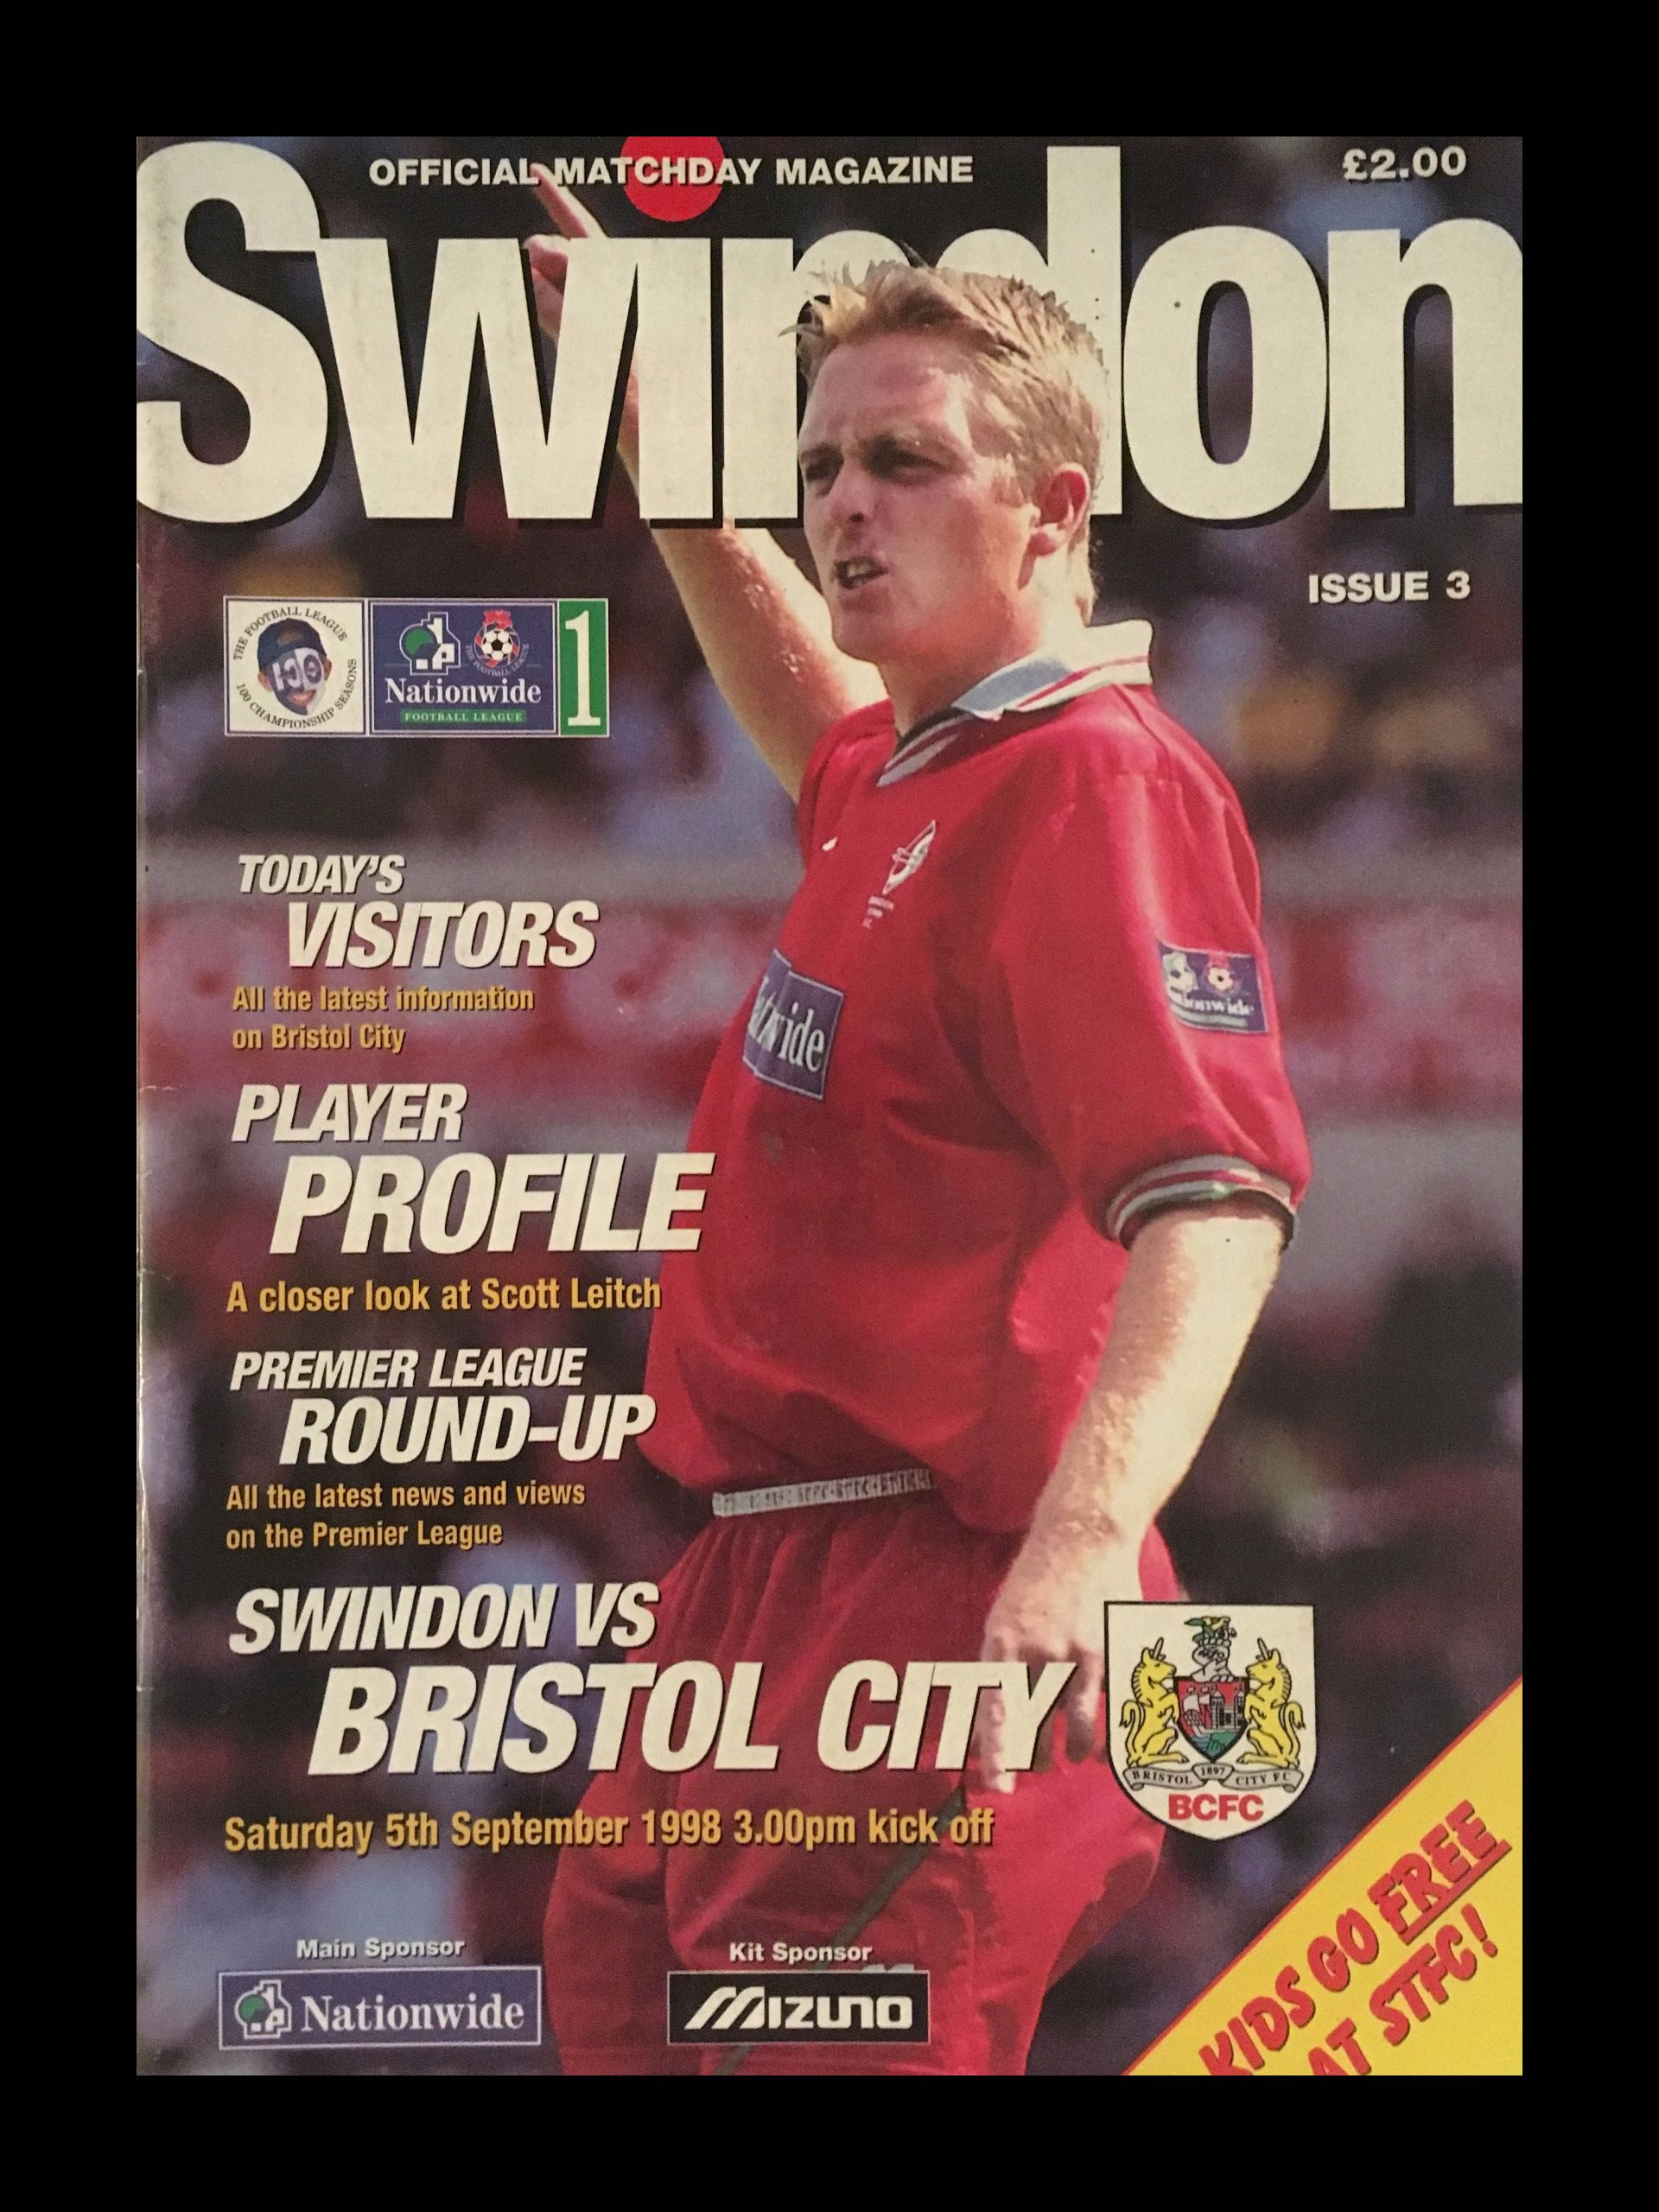 Swindon Town v Bristol City 05-09-1998 Programme